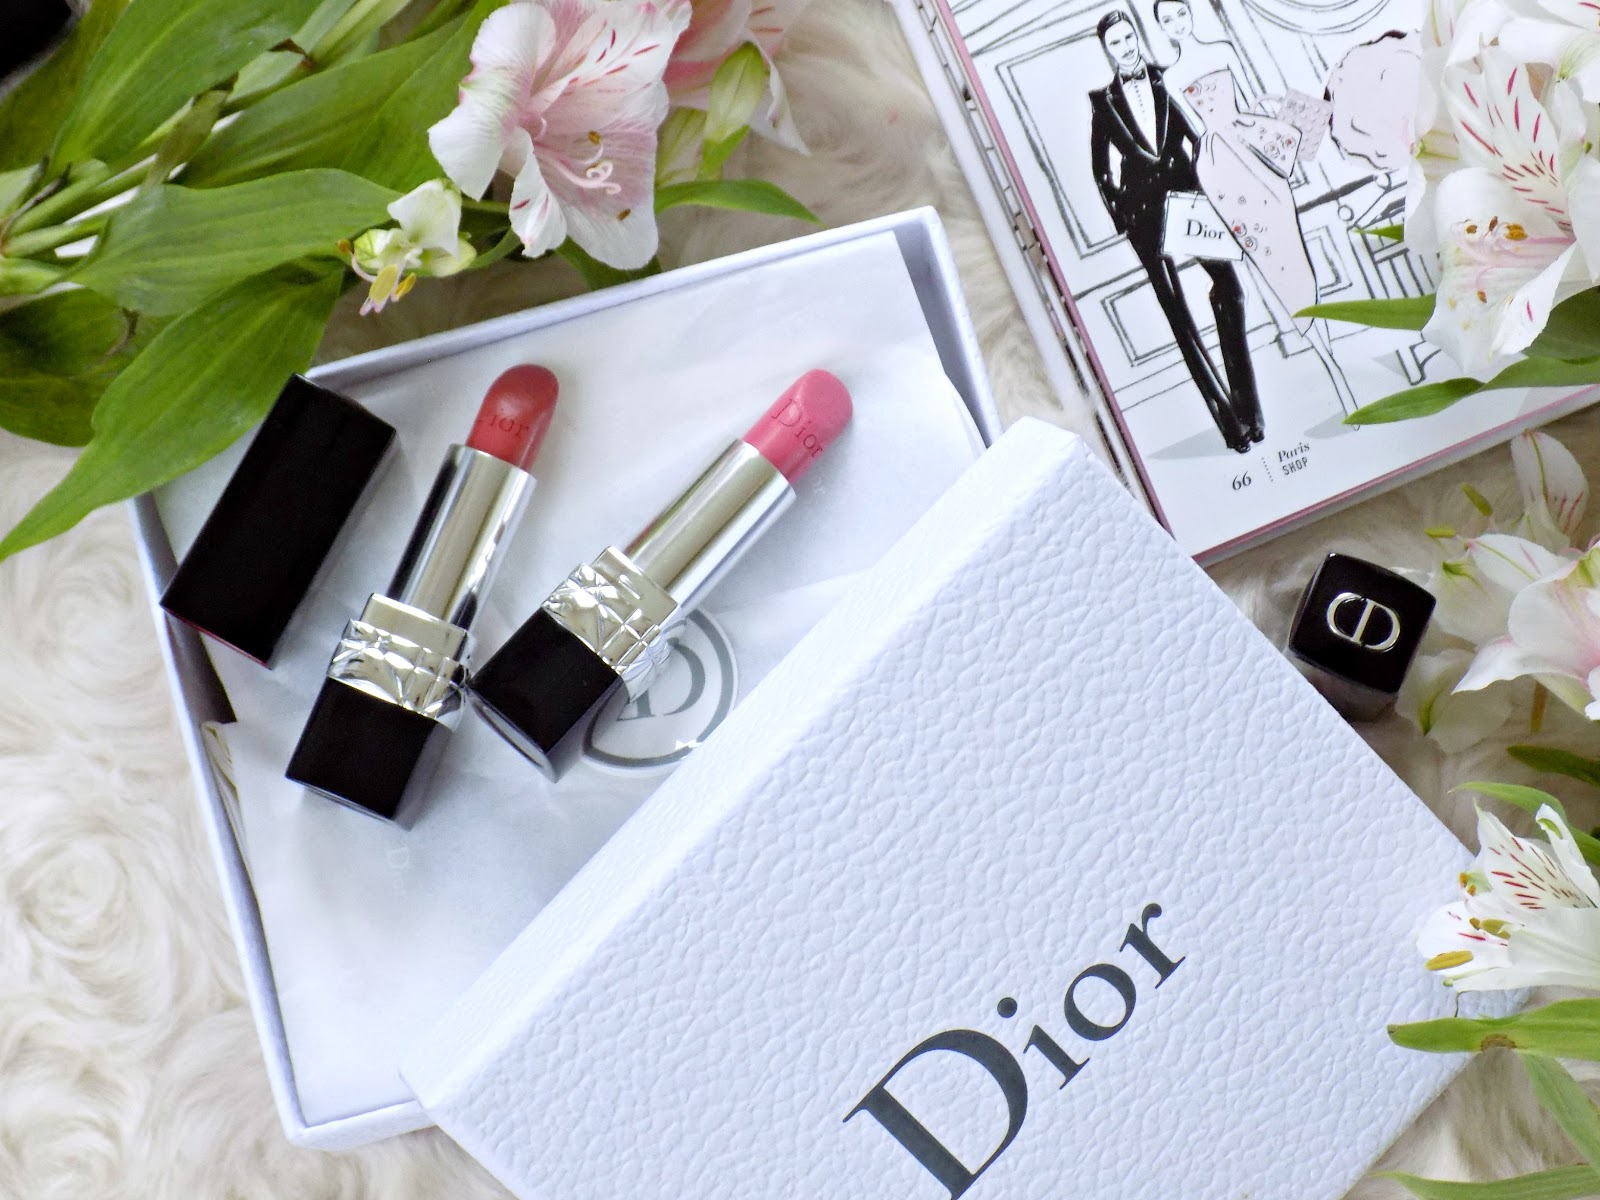 Dior Rouge Couture Colour shade 060 Premiere, Dior Rouge Couture Colour shade 458 Paris